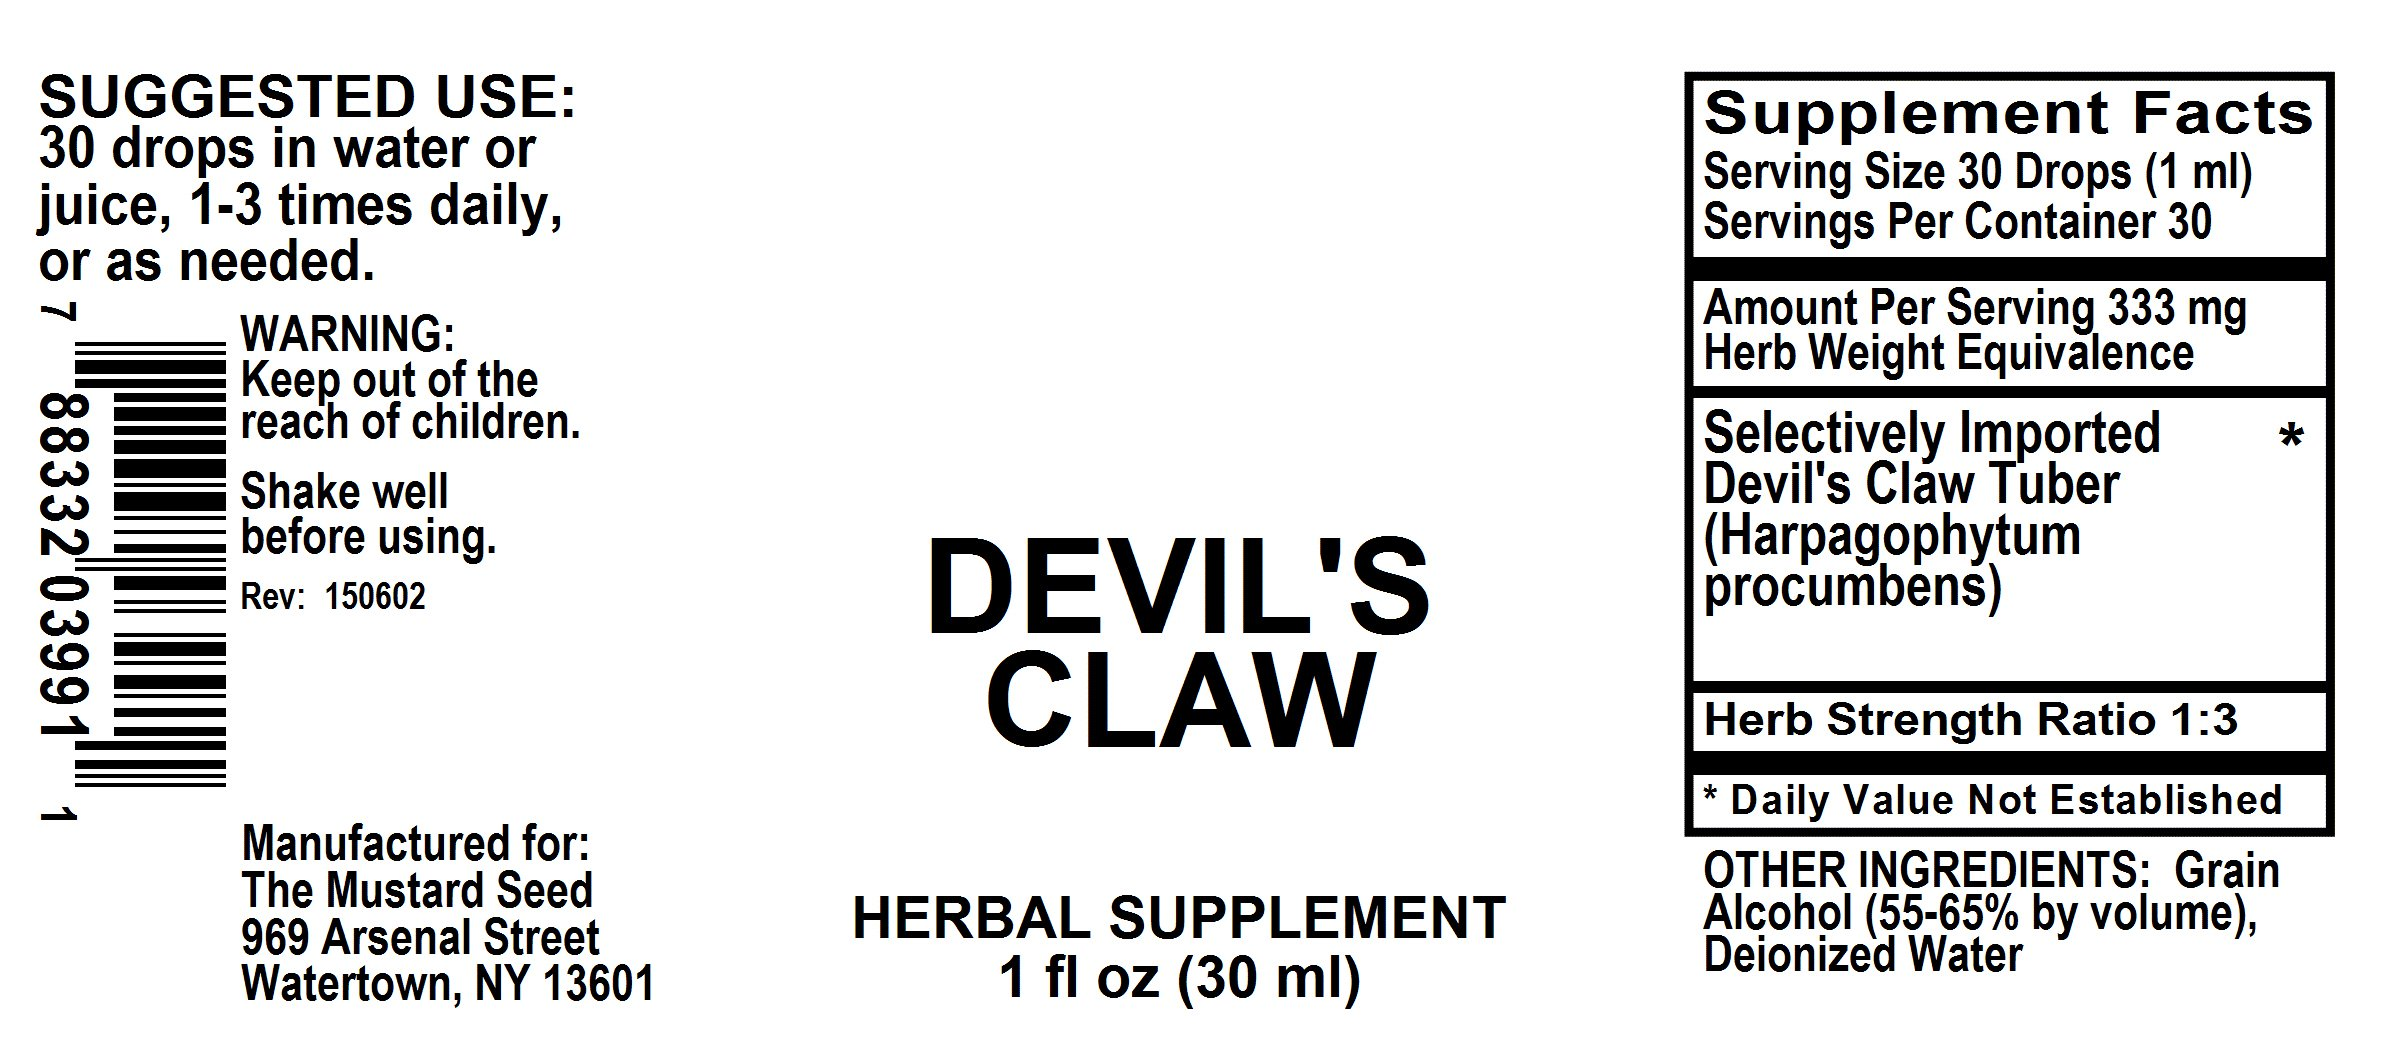 Devil's Claw - The Mustard Seed